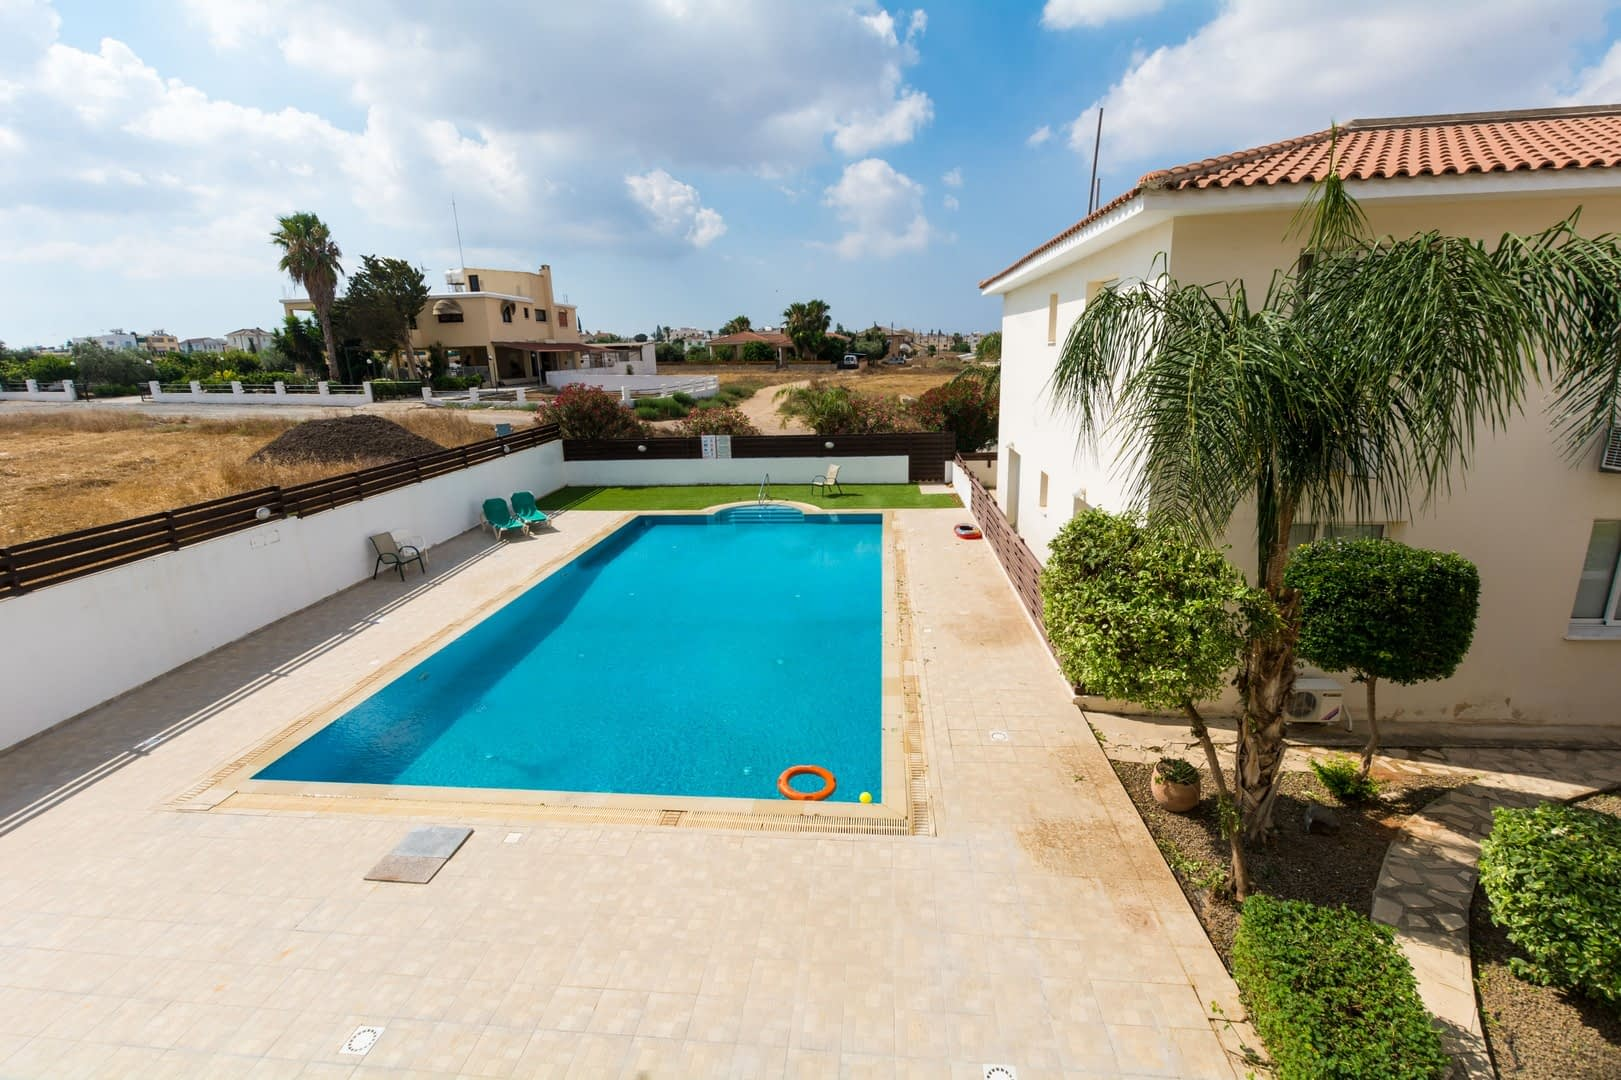 Two Bedroom Apartment for sale in Paralimni Area